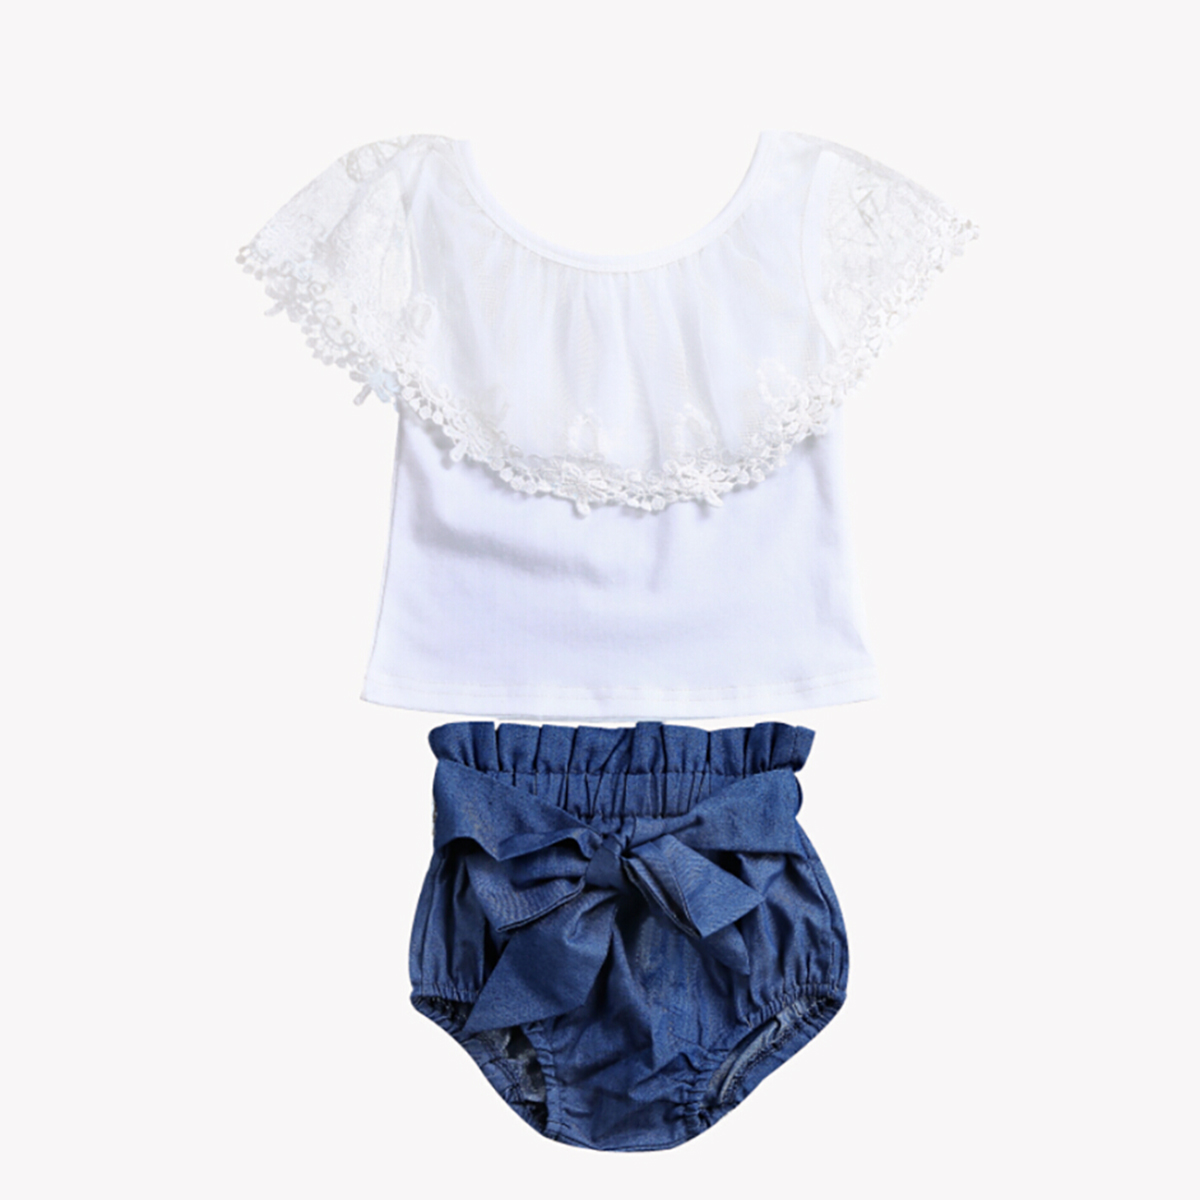 2017 Cute Toddler Kids Clothes Summer White Lace T-shirt Tops Off shoulder+Denim Shorts Bloomers 2PCS Outfits Children Clothing 2017 cute kids girl clothing set off shoulder lace white t shirt tops denim pant jeans 2pcs children clothes 2 7y